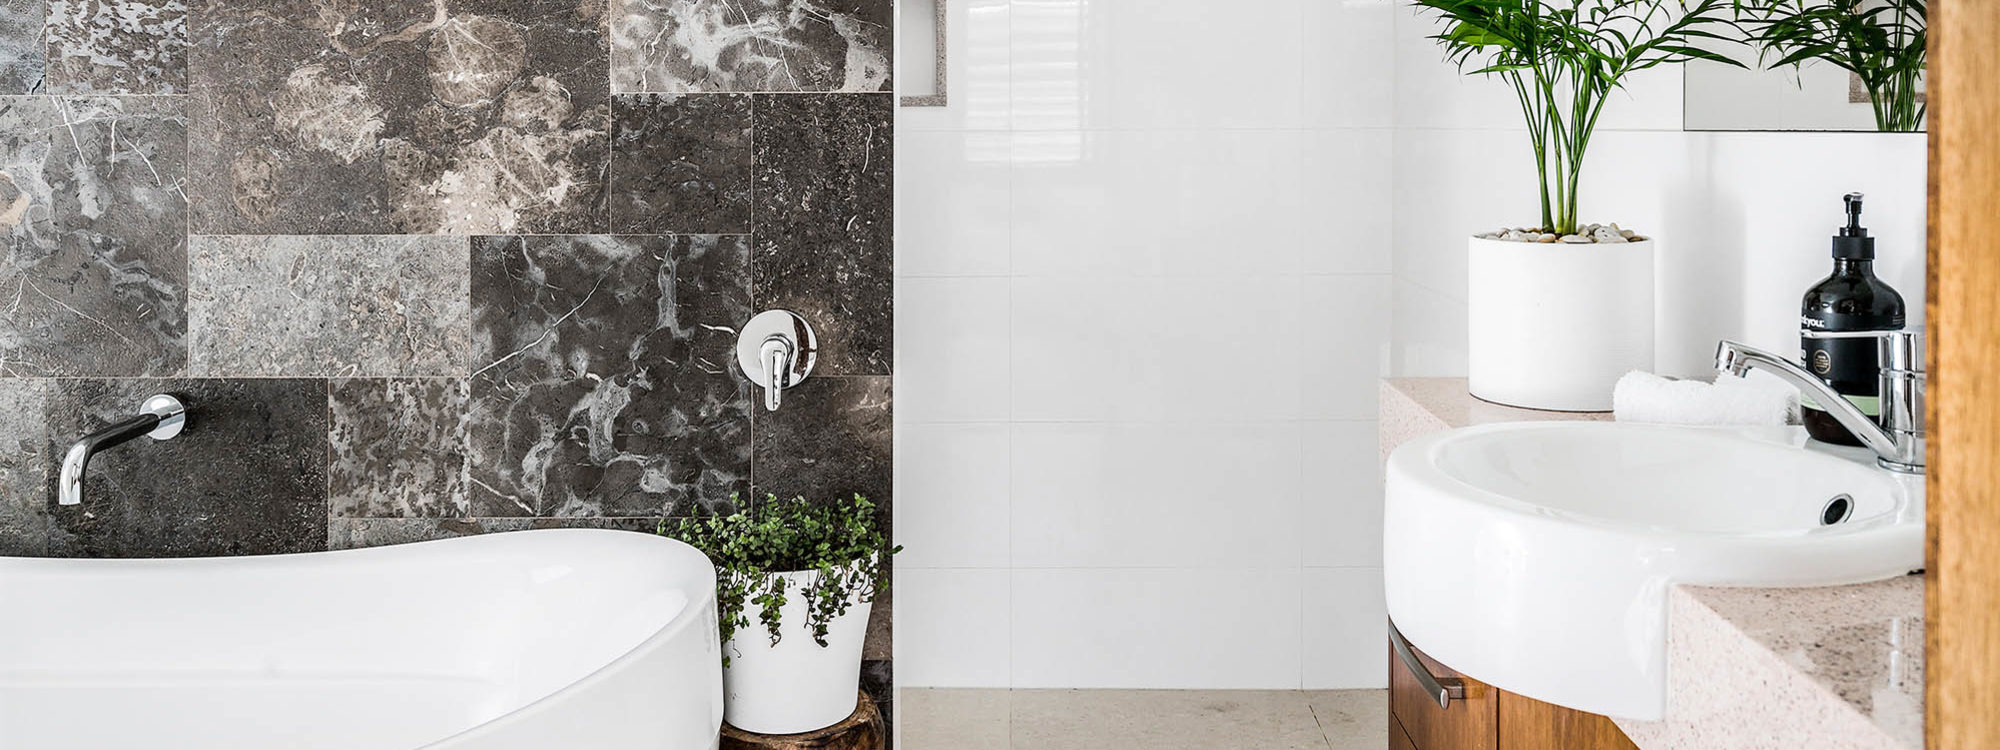 Bahari - Byron Bay - Bathroom Master Ensuite